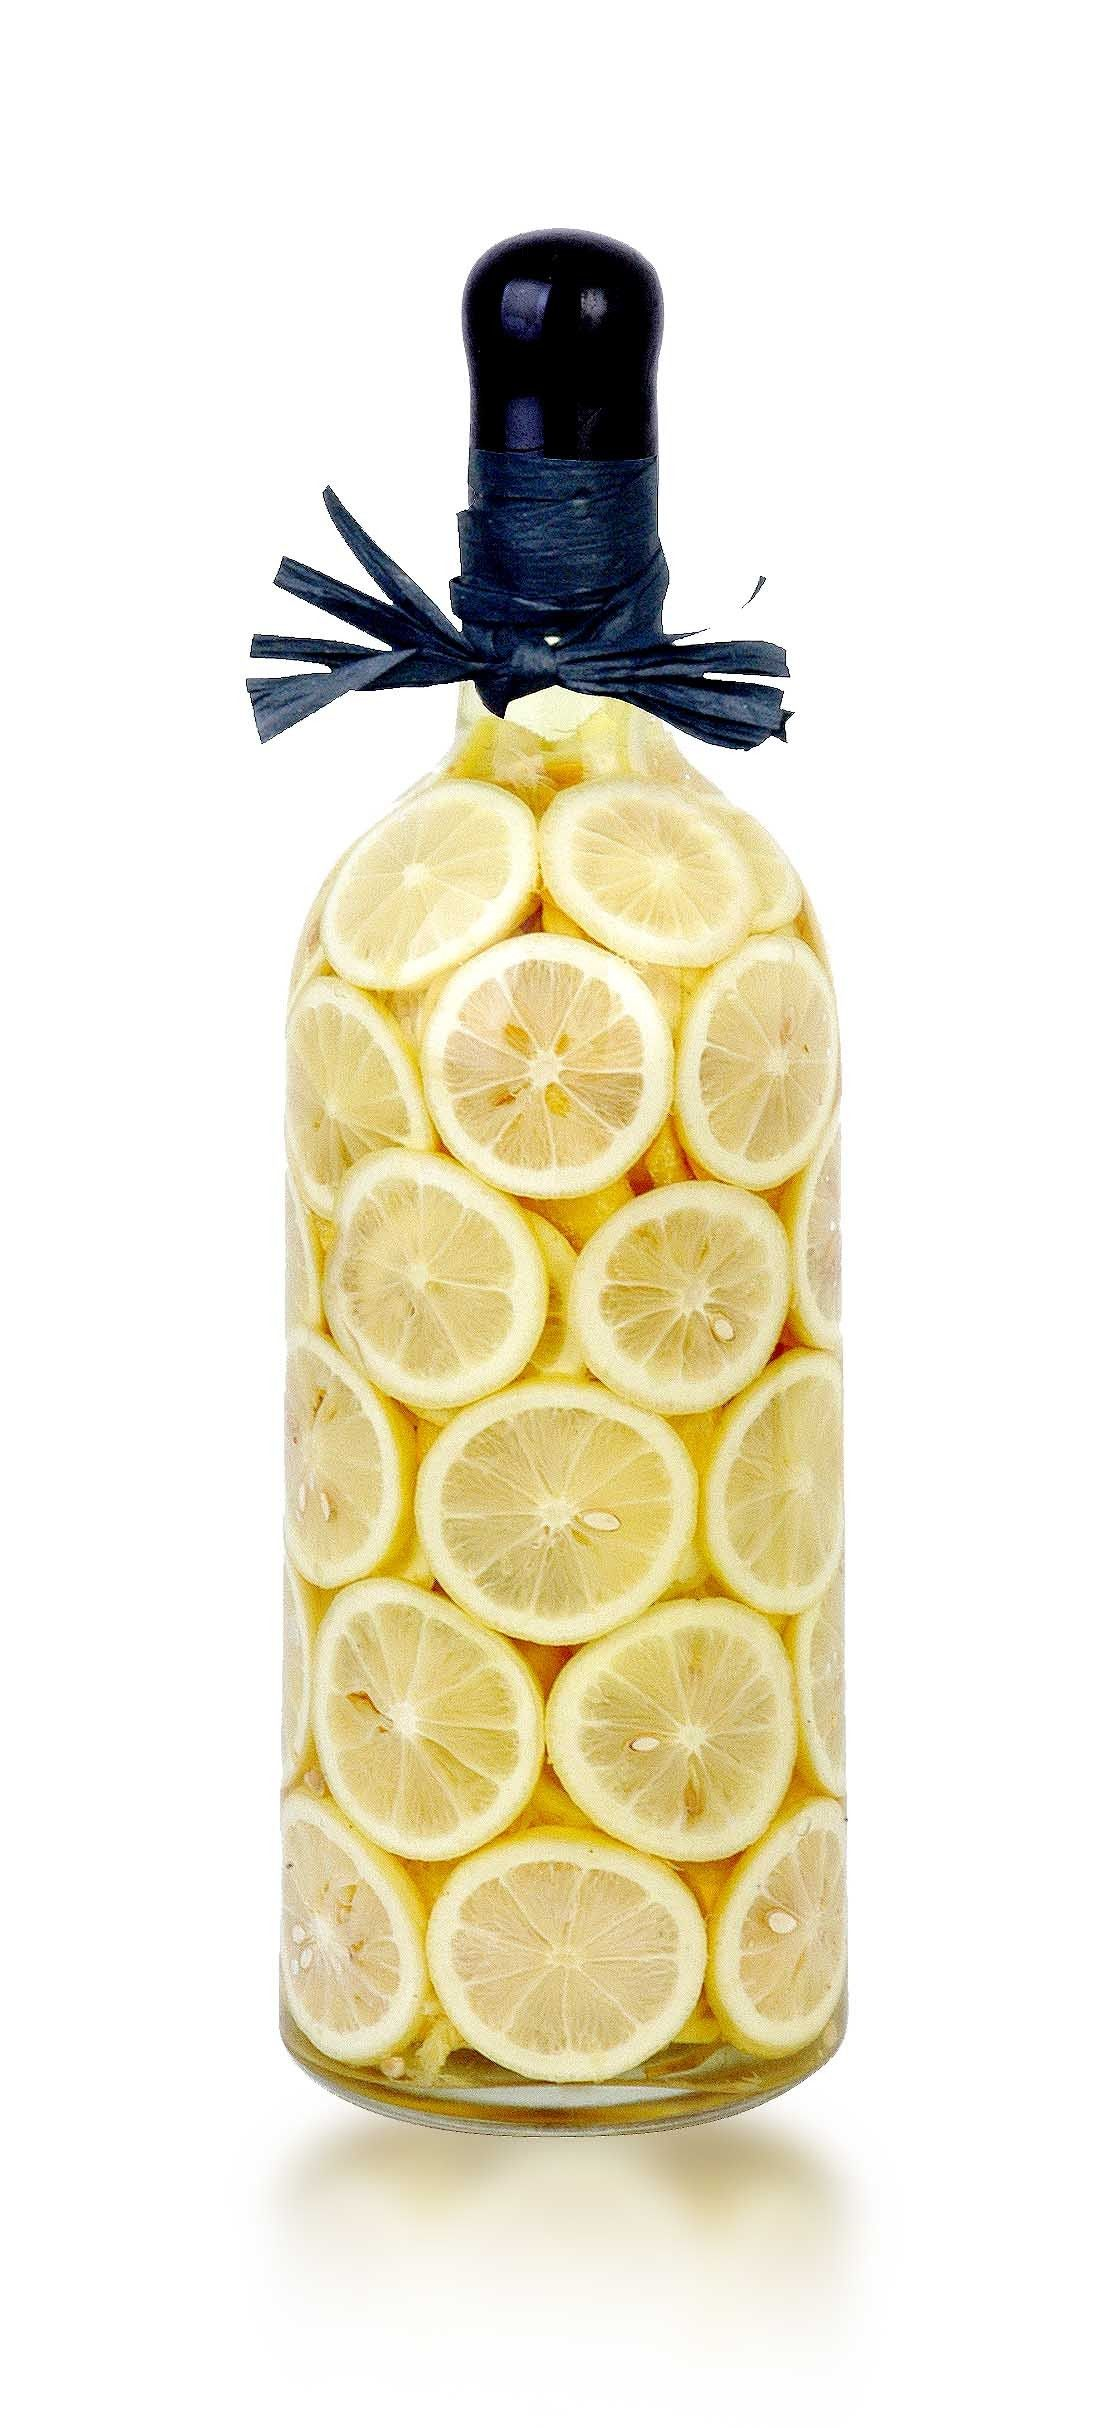 Decorative Infused Olive Oil: LIMONE Decorated Vinegar Bottle